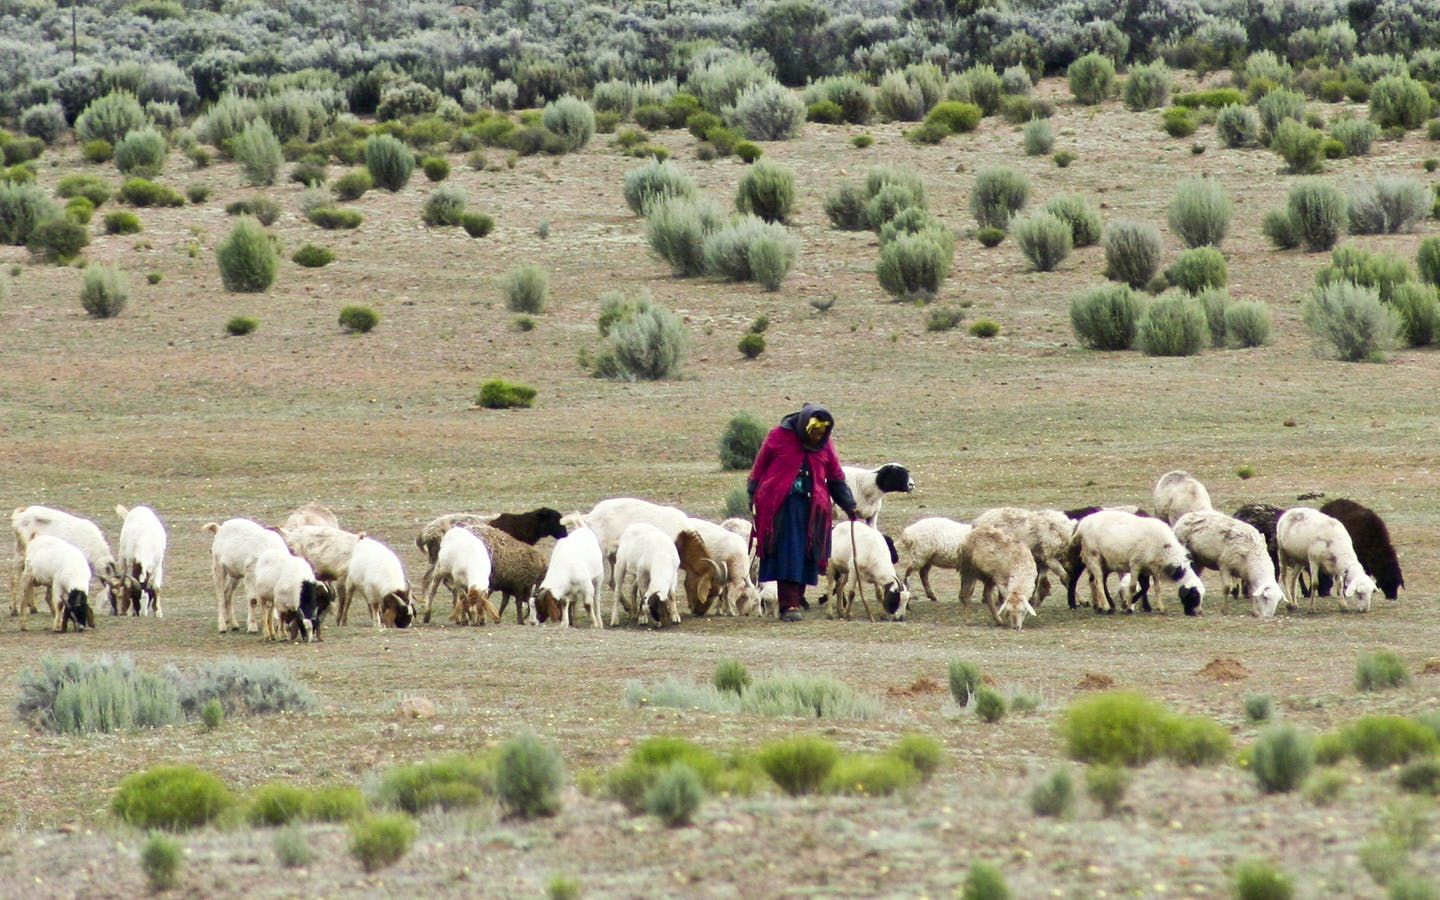 Old women bringing in the sheep and goats in Kamiesberg, Namaqualand.